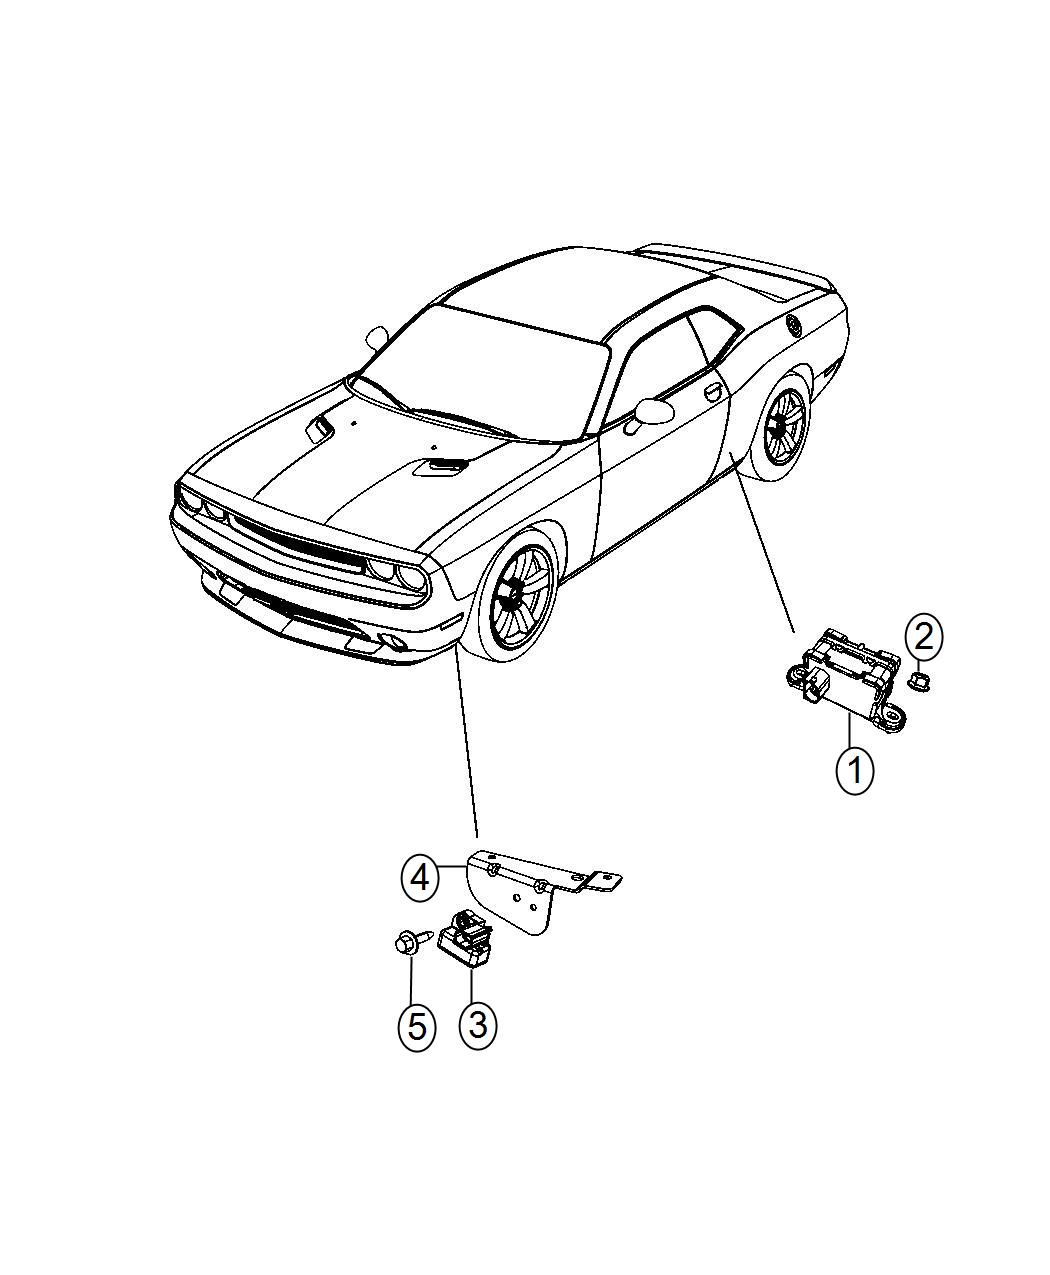 Chrysler 300 Sensor Dynamics Lateral Acceleration And Yaw Rate Bnb